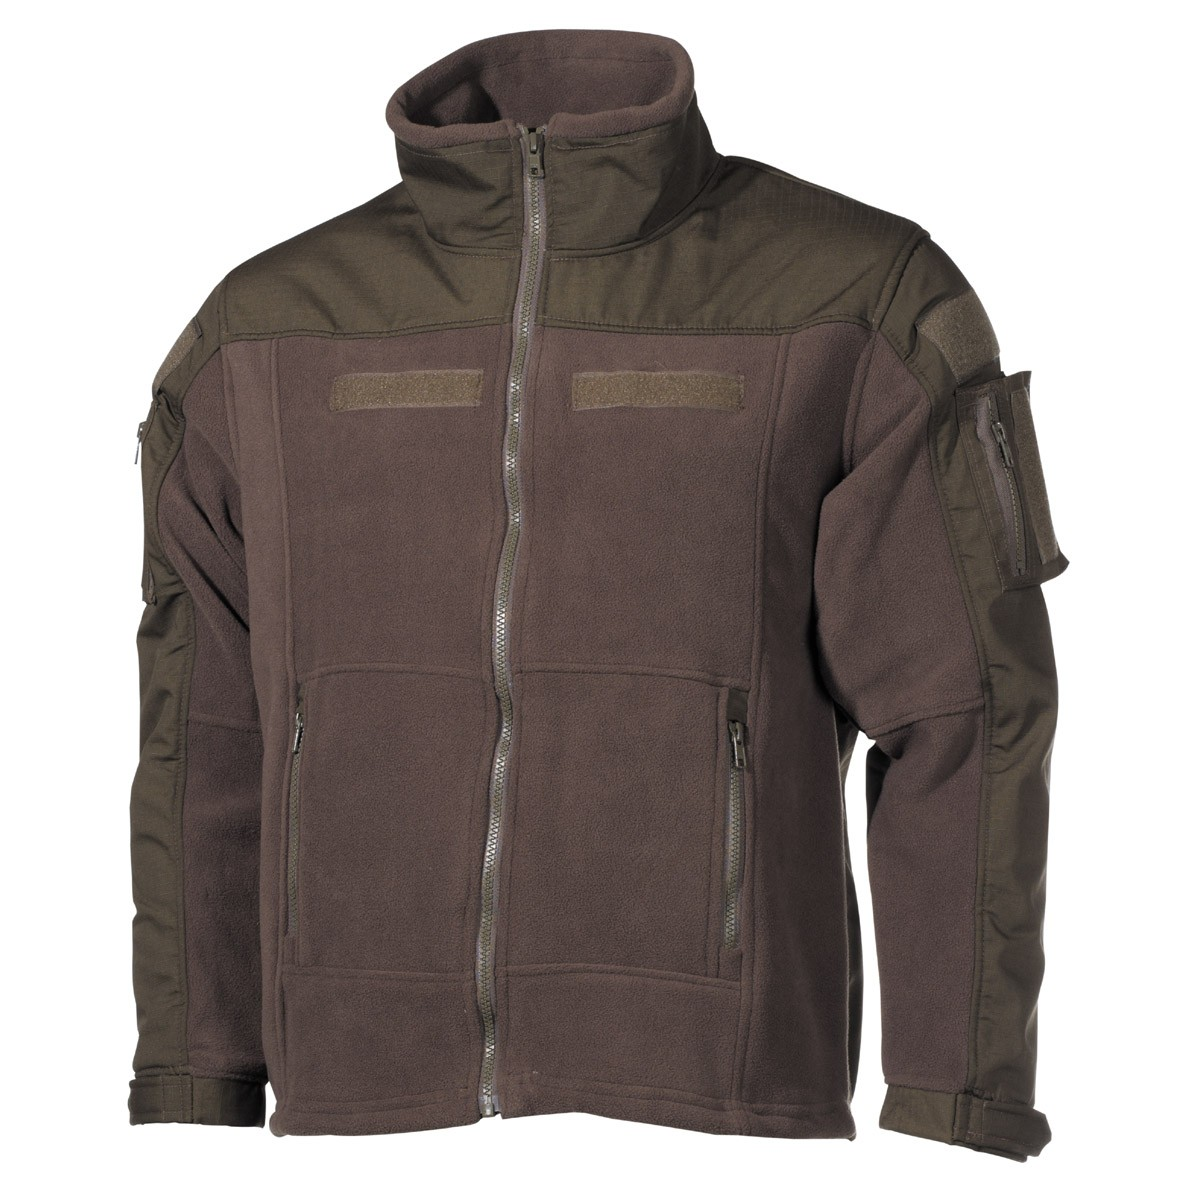 Professional Tactical Military Fleece Jacket COMBAT High Defense - OD Green